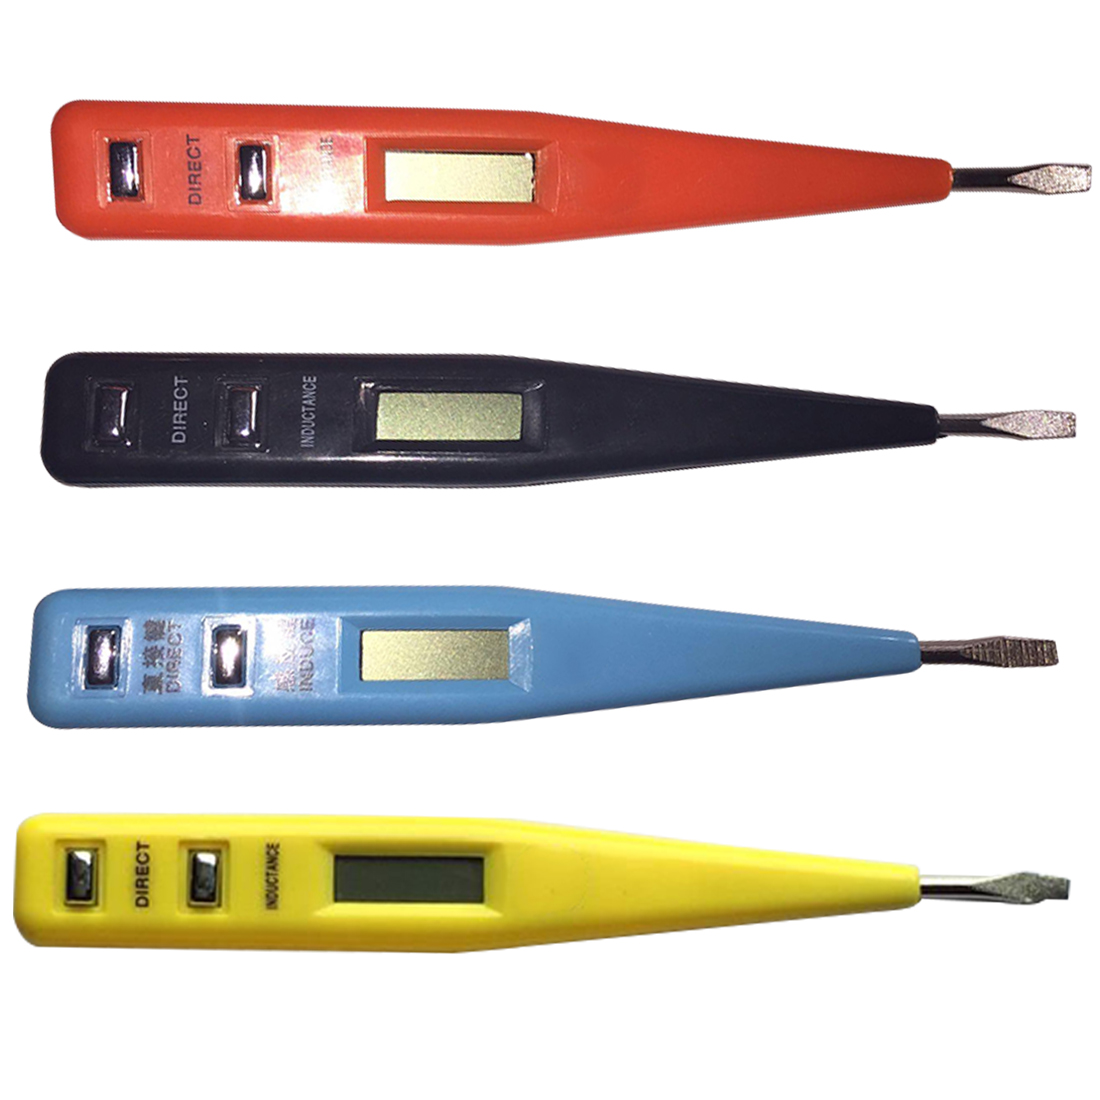 цена на AC DC 12-250V Multi-Sensor Electrical LCD Display Voltage Detector Test Pen Digital Test Pencil Multifunction Random color